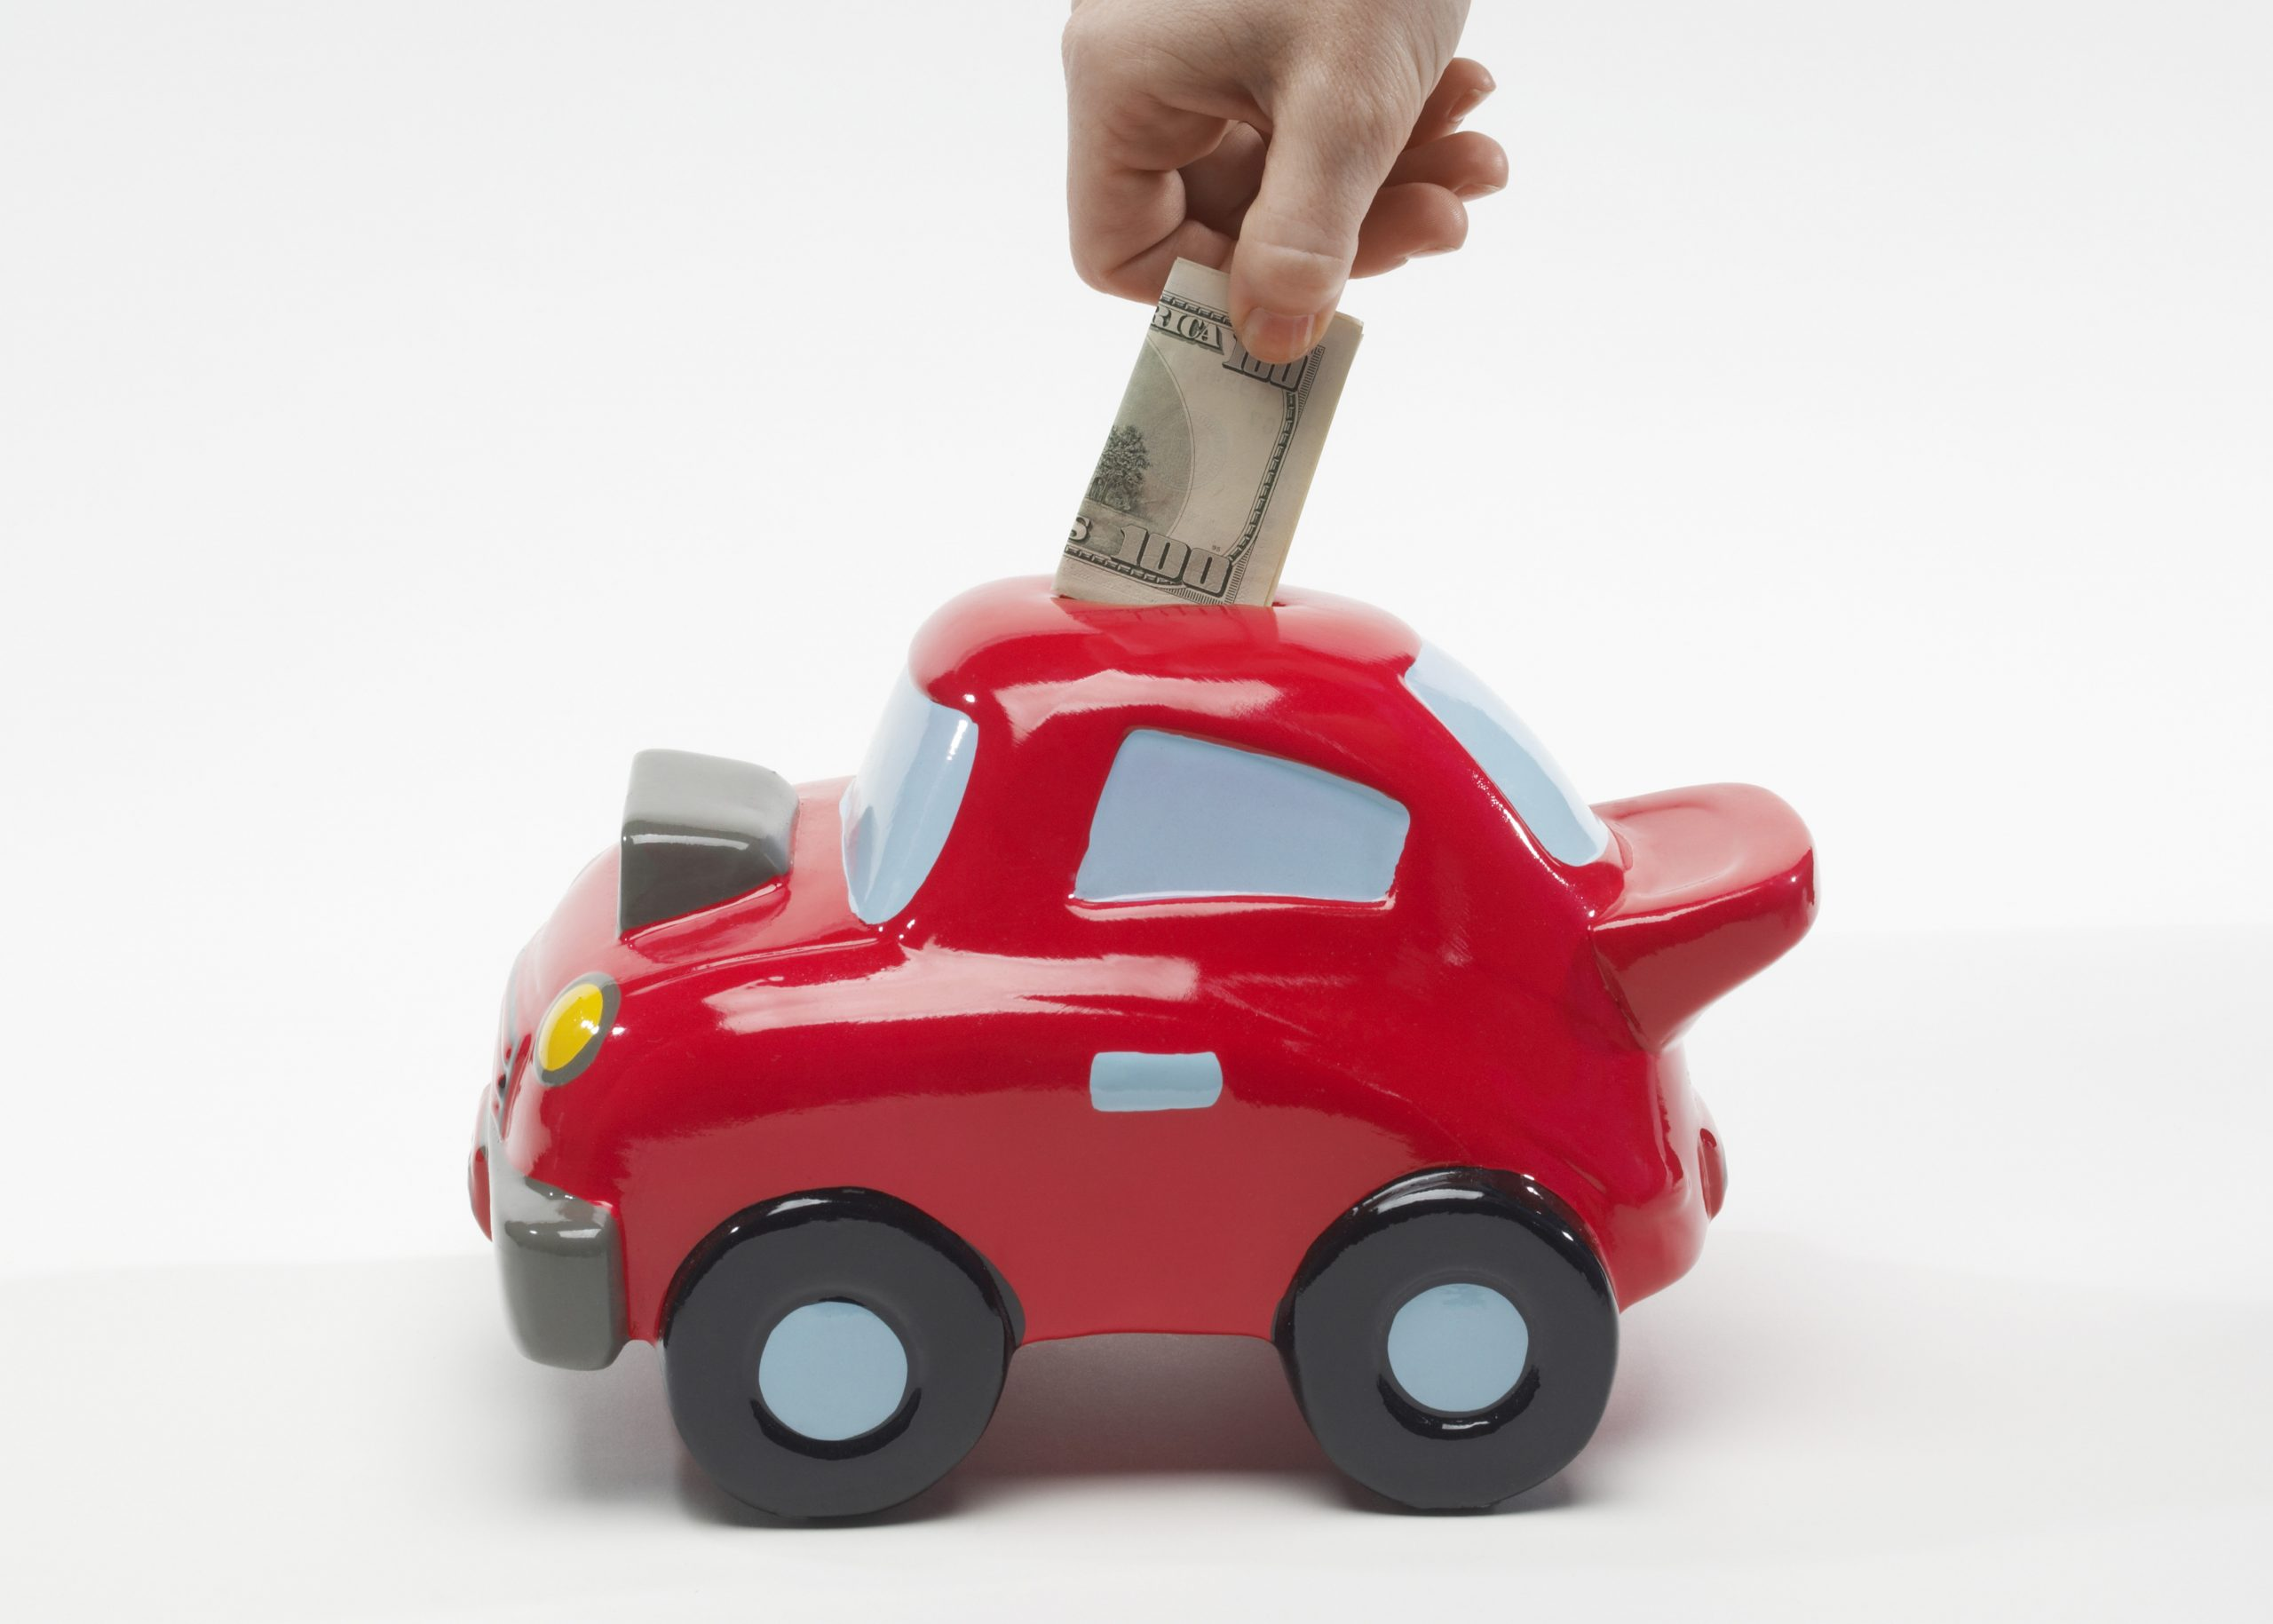 Image of a hand putting a $100 bill into a car shaped piggy bank. Link takes you the Bank of Versailles Passbook Savings Account page.